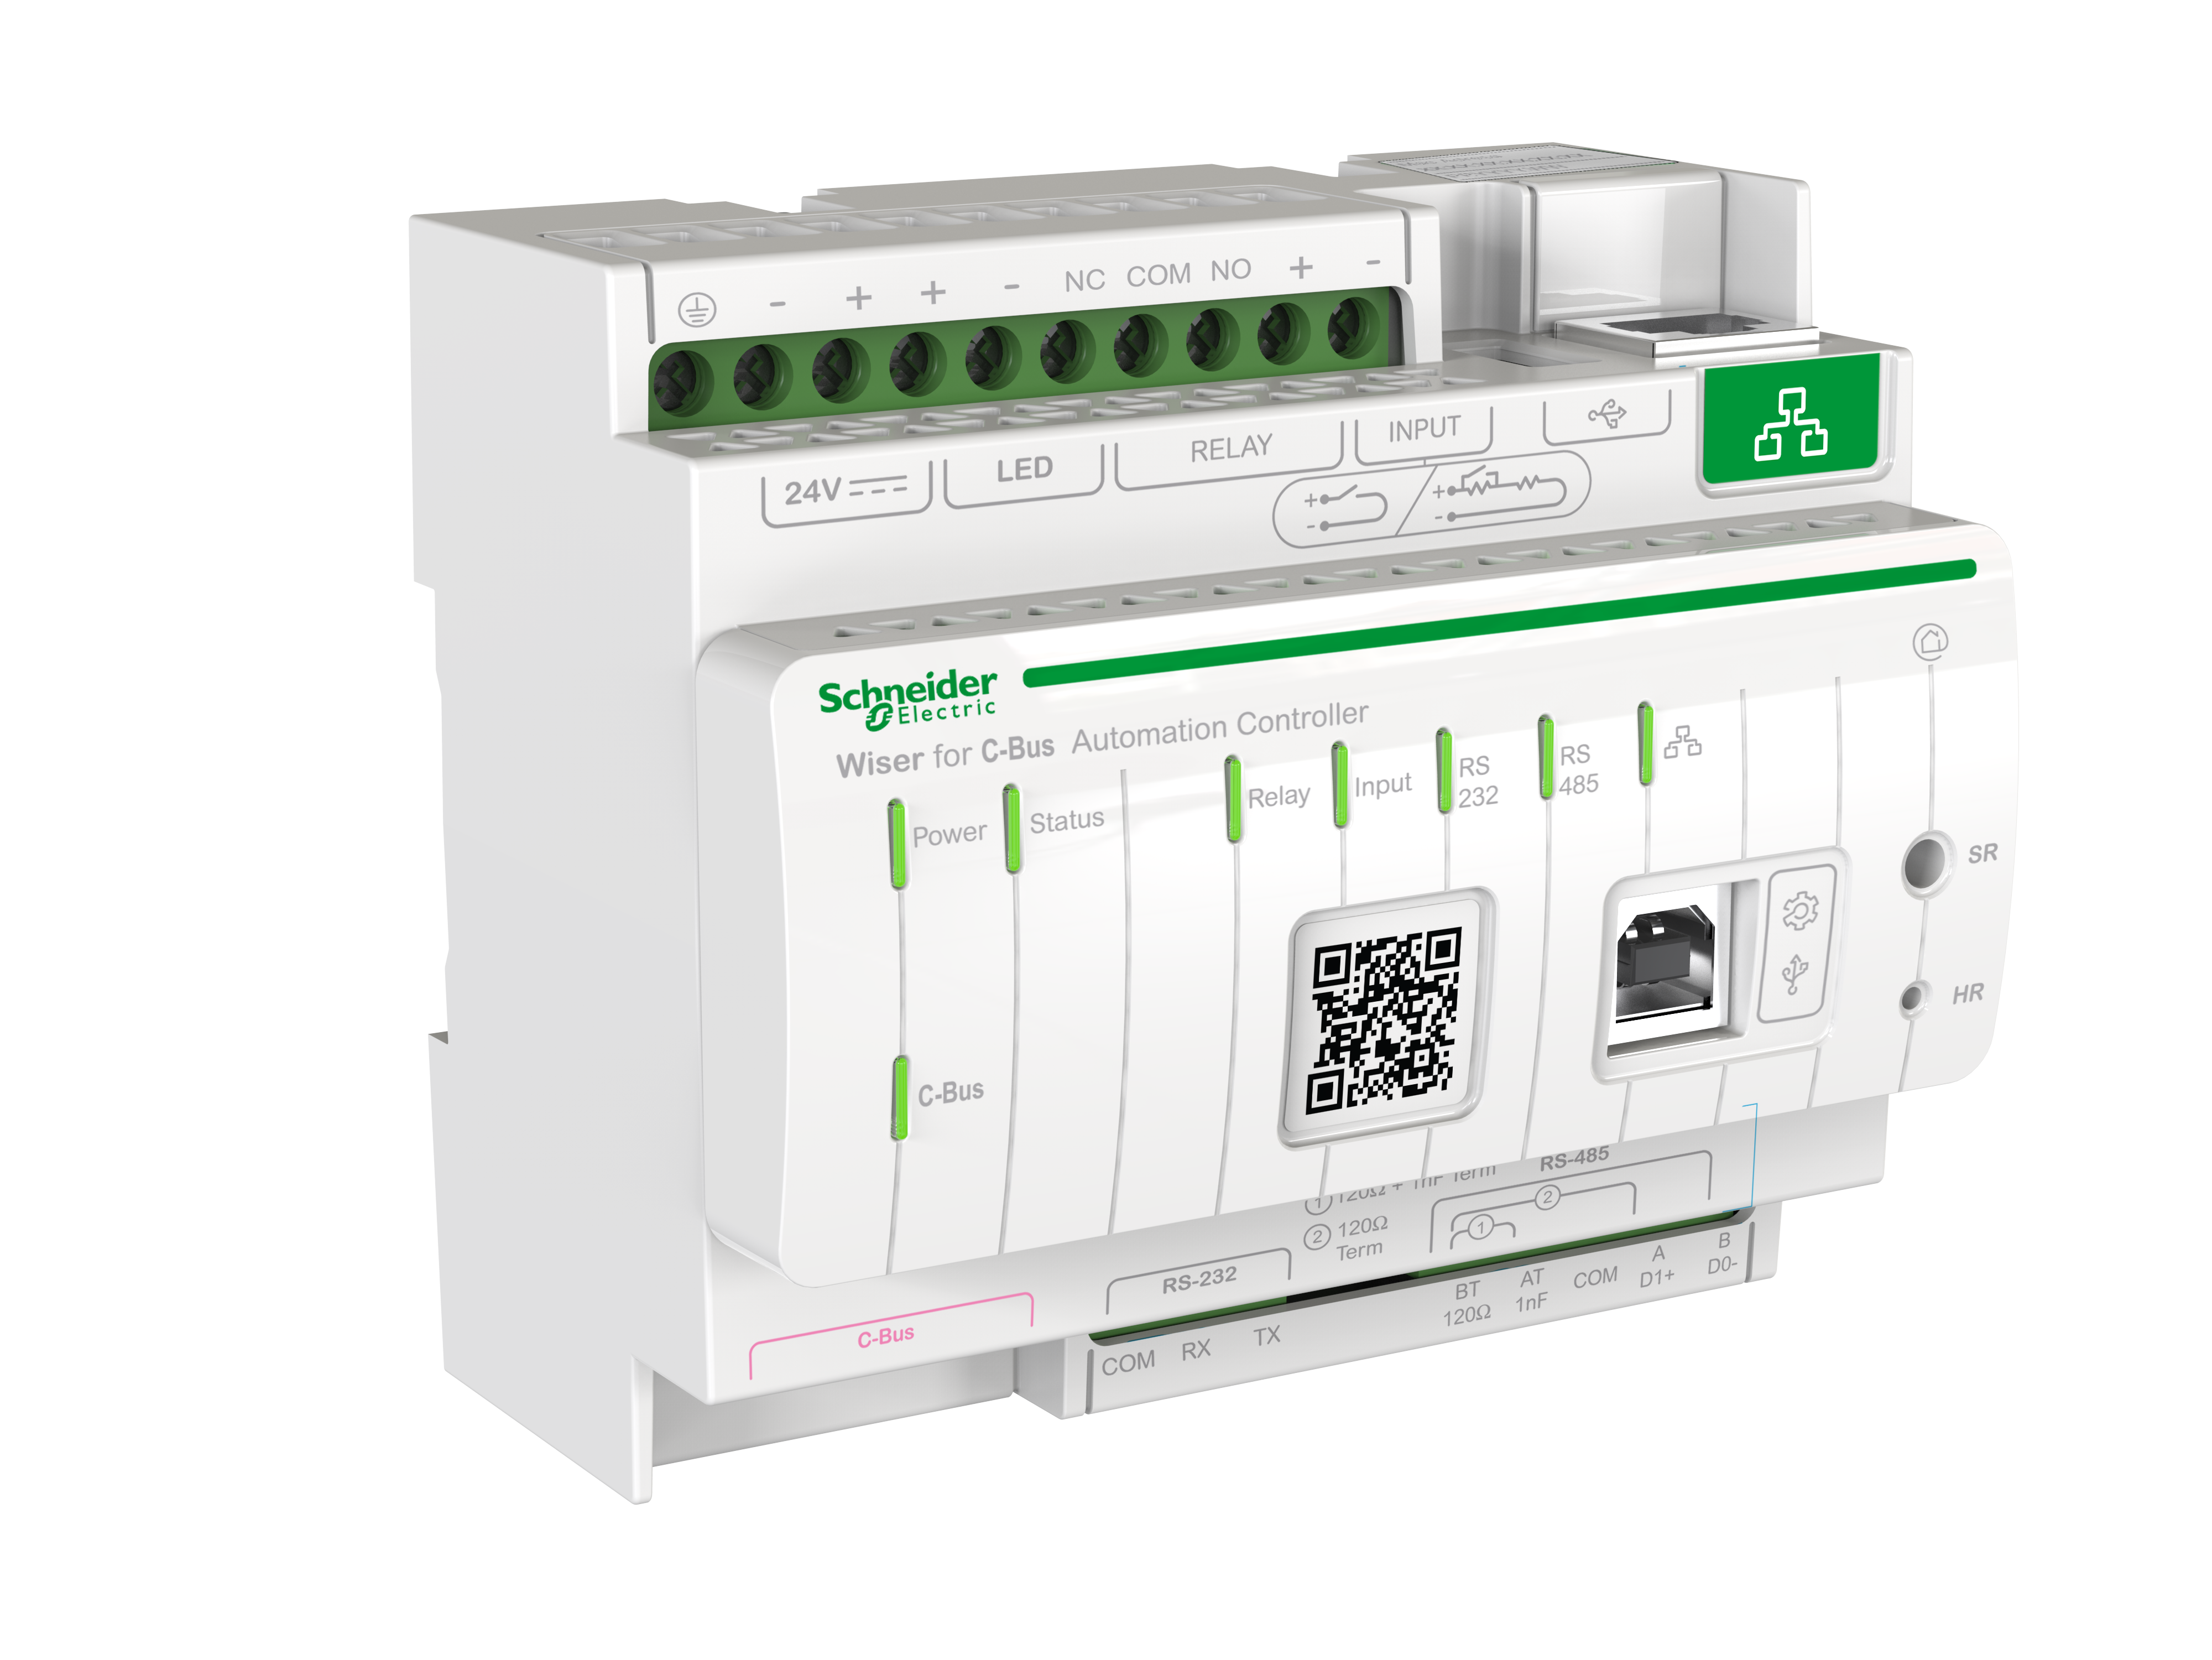 Uk The First Eu Nation To Adopt Schneider Electric S